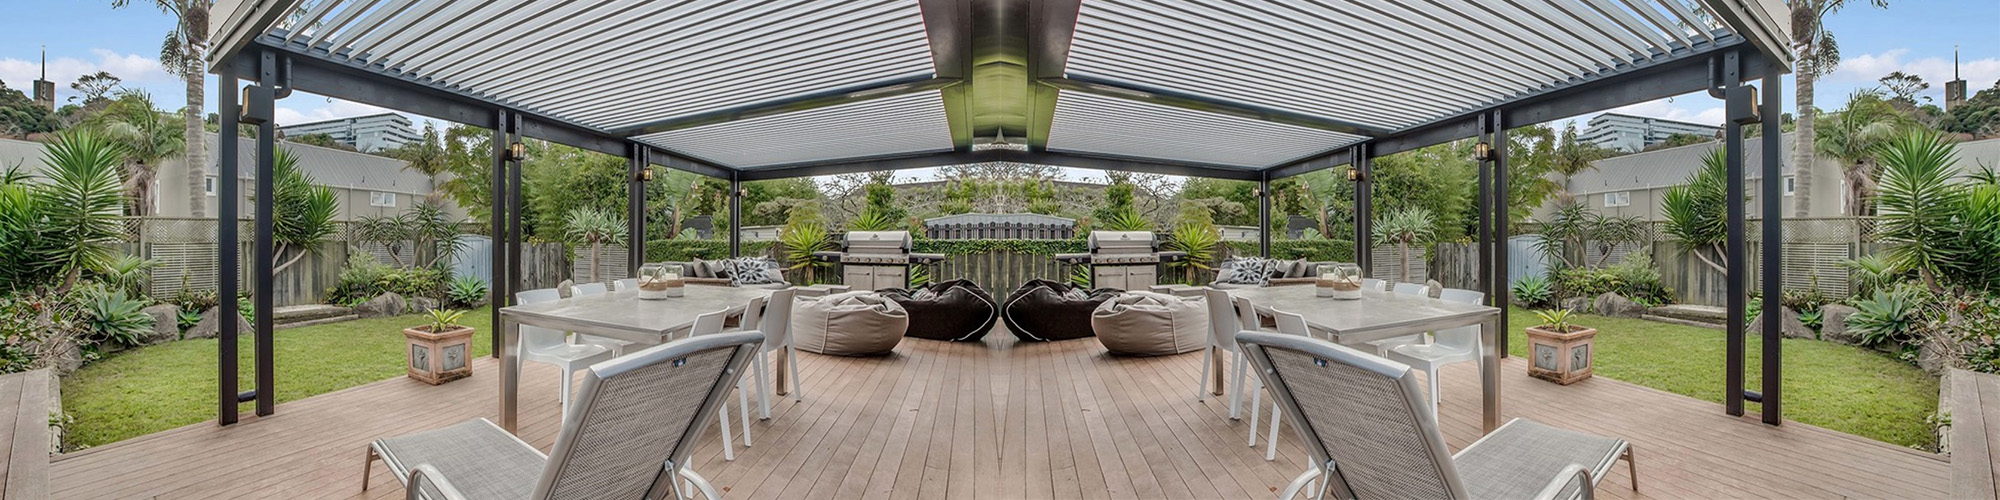 Pergolas And Louvres Add A Roof To Your Deck Ezydeck